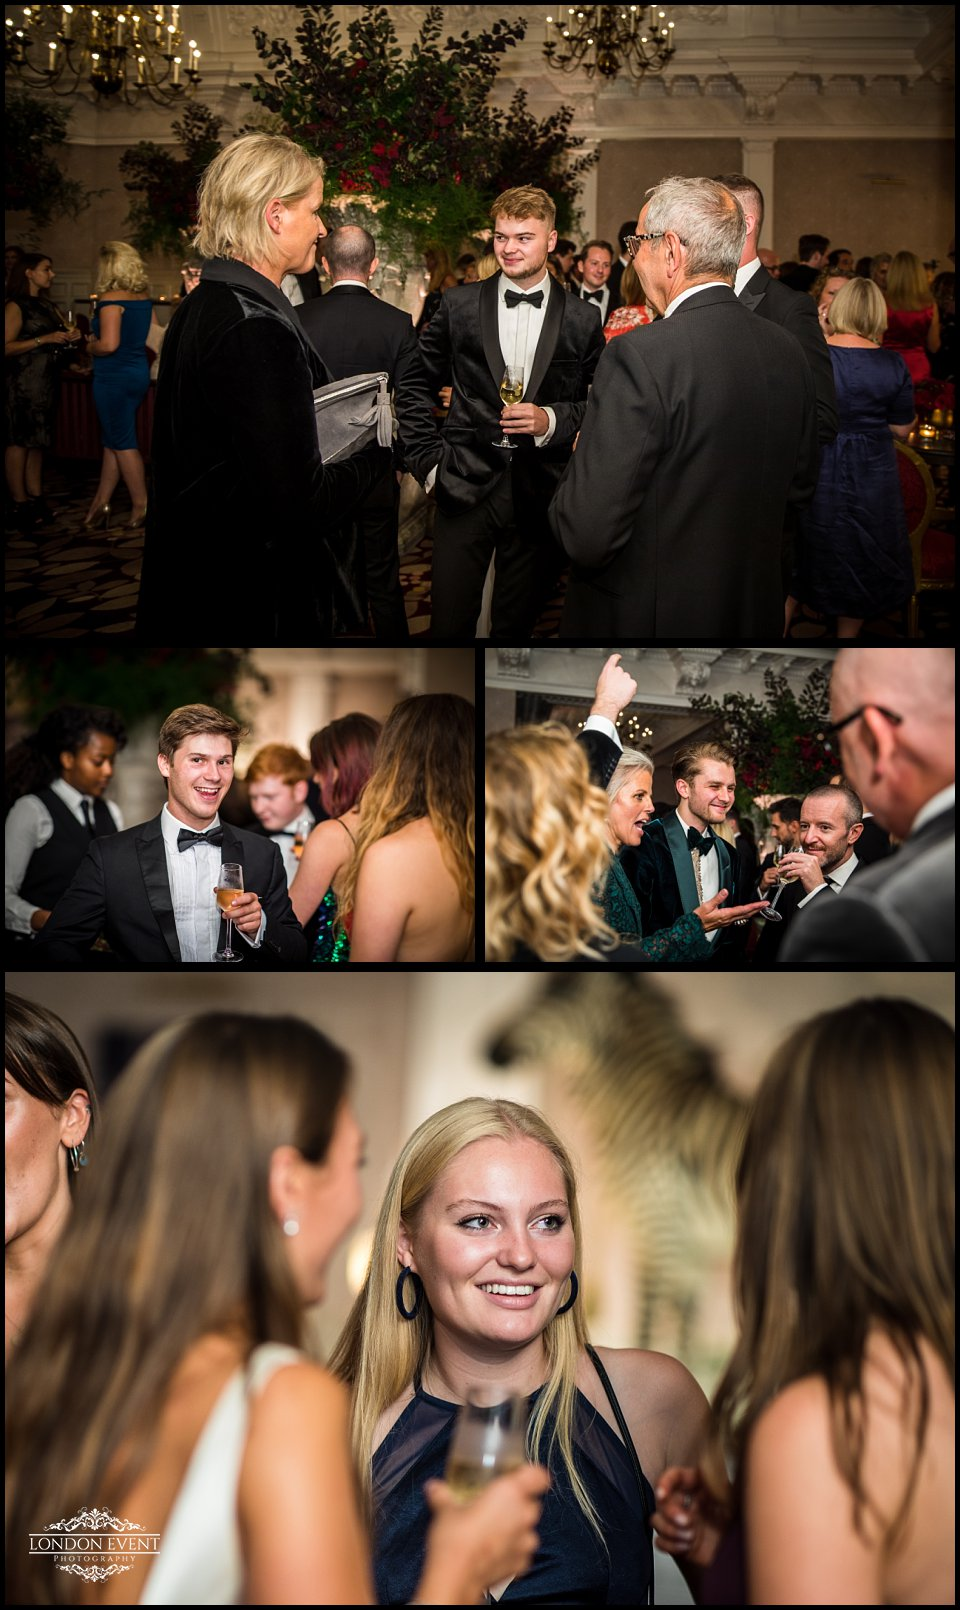 Event Photographer London Party St Ermins Hotel